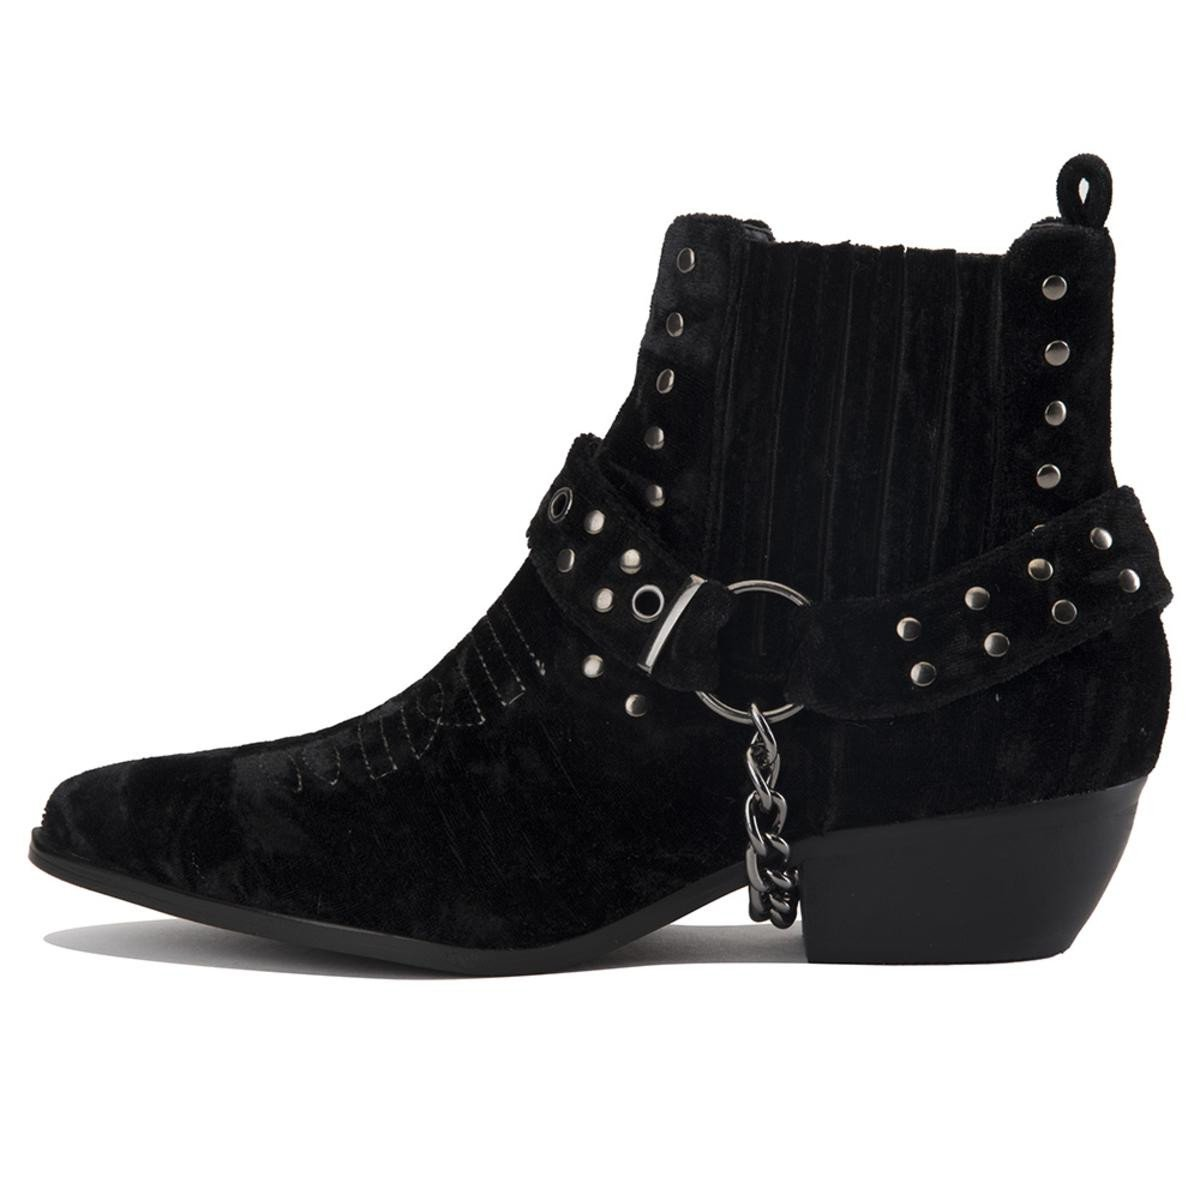 Y.R.U. for Women: Laso Black Velvet Bootie Heels